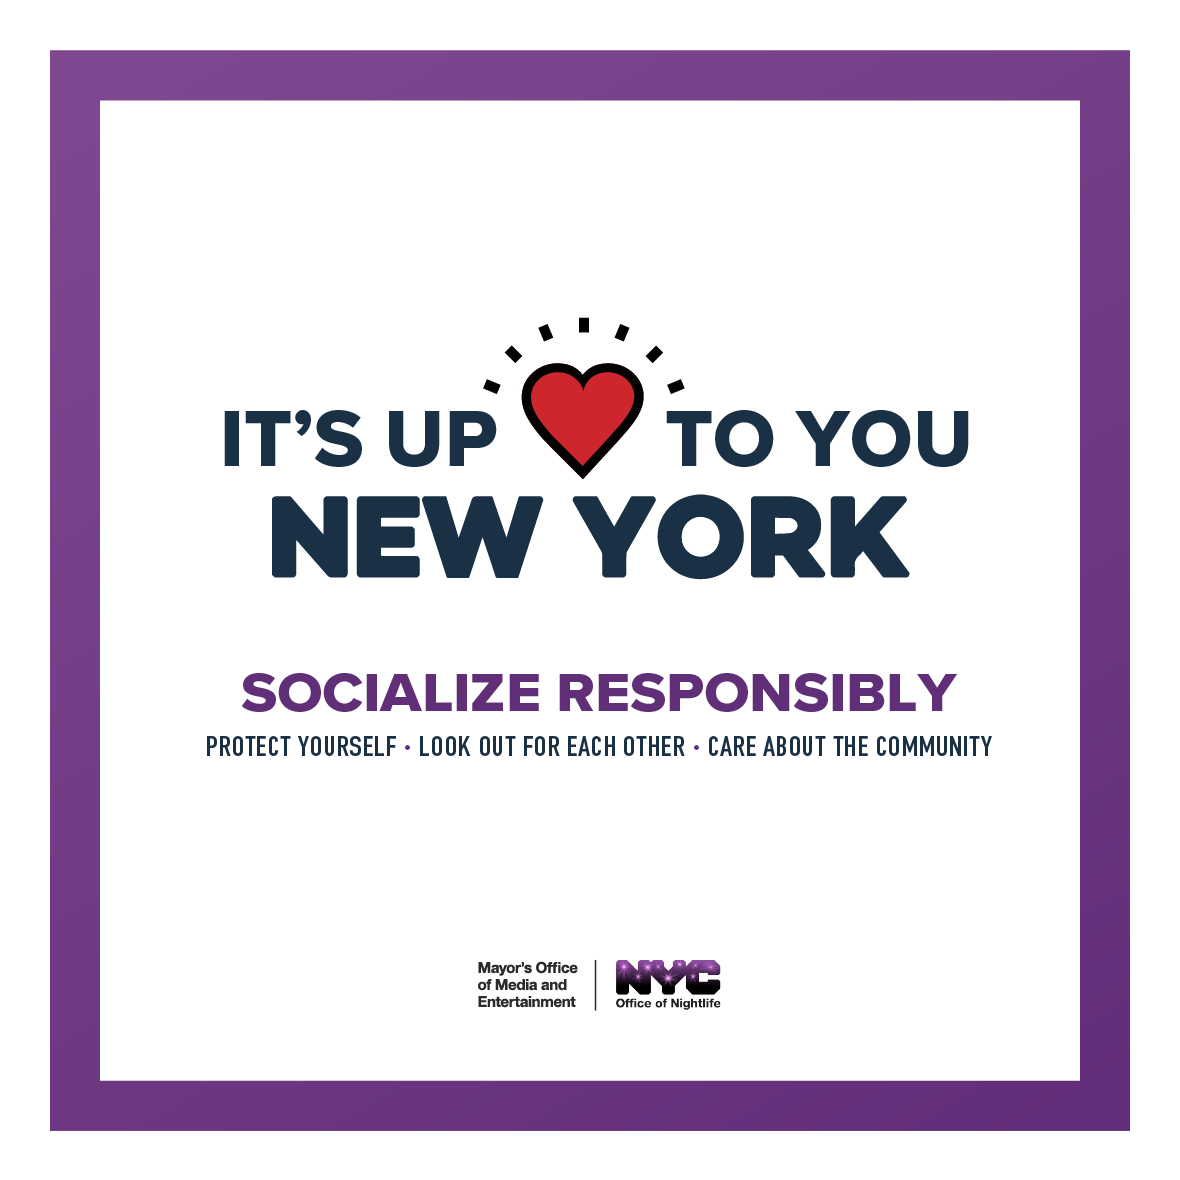 Please check out the attached informative graphics from NYC Office of Nightlife as we are currently in Phase 3 of reopening plan. pic.twitter.com/2YnQjGiYSf